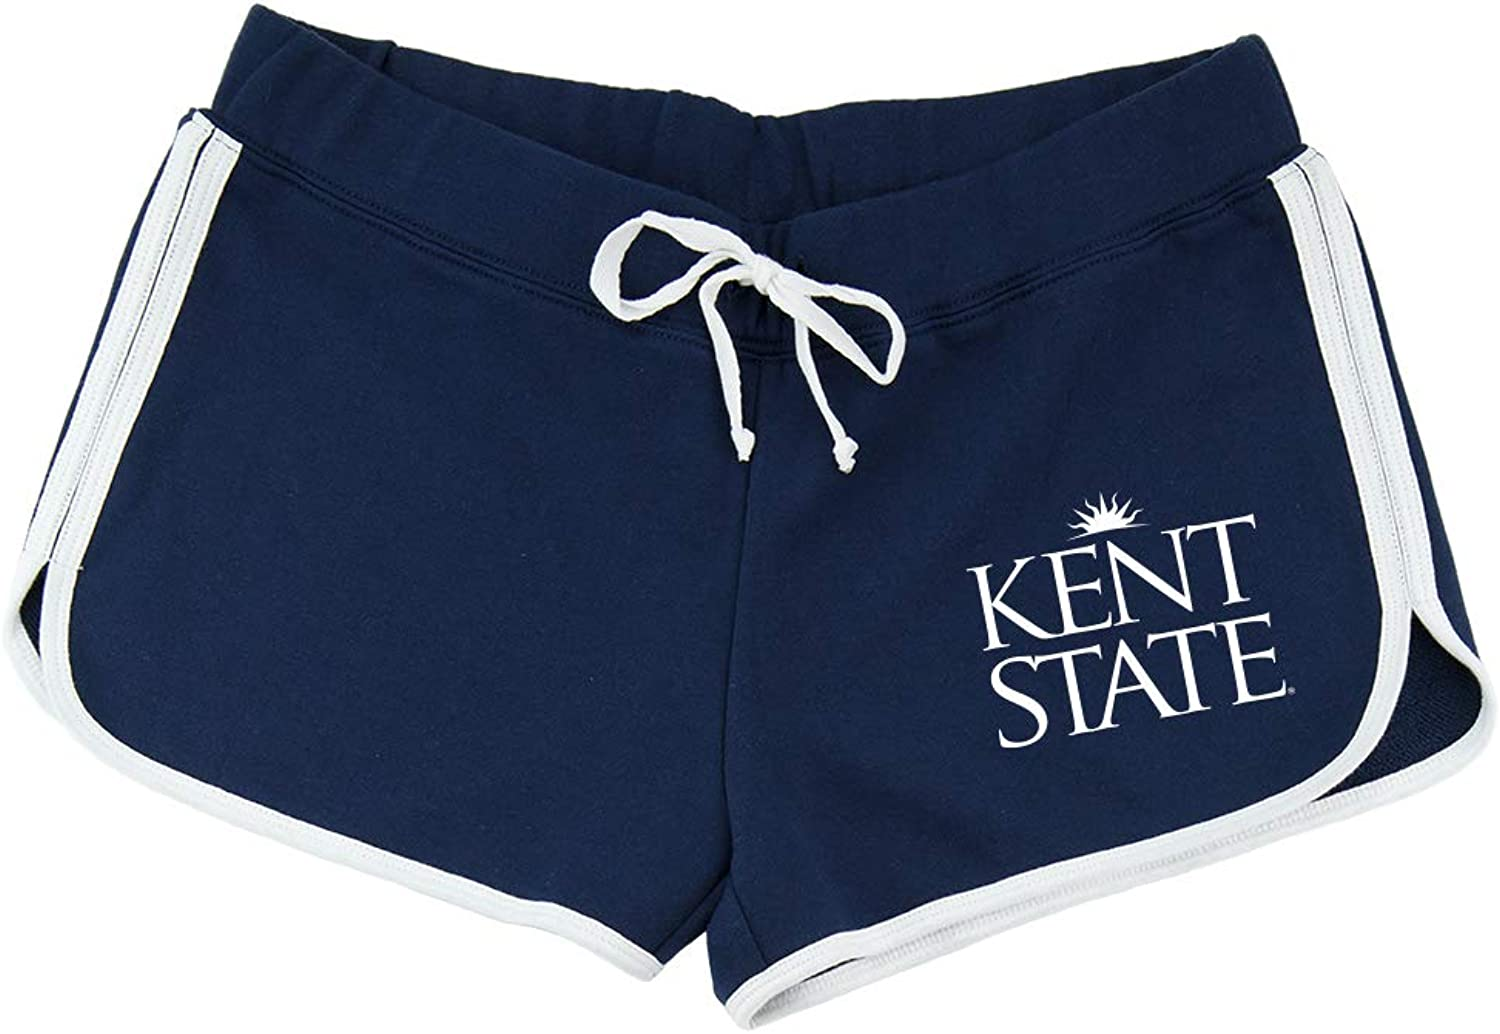 All stores are sold Sorority Letters Shop Kent Relay State High quality new Shorts University